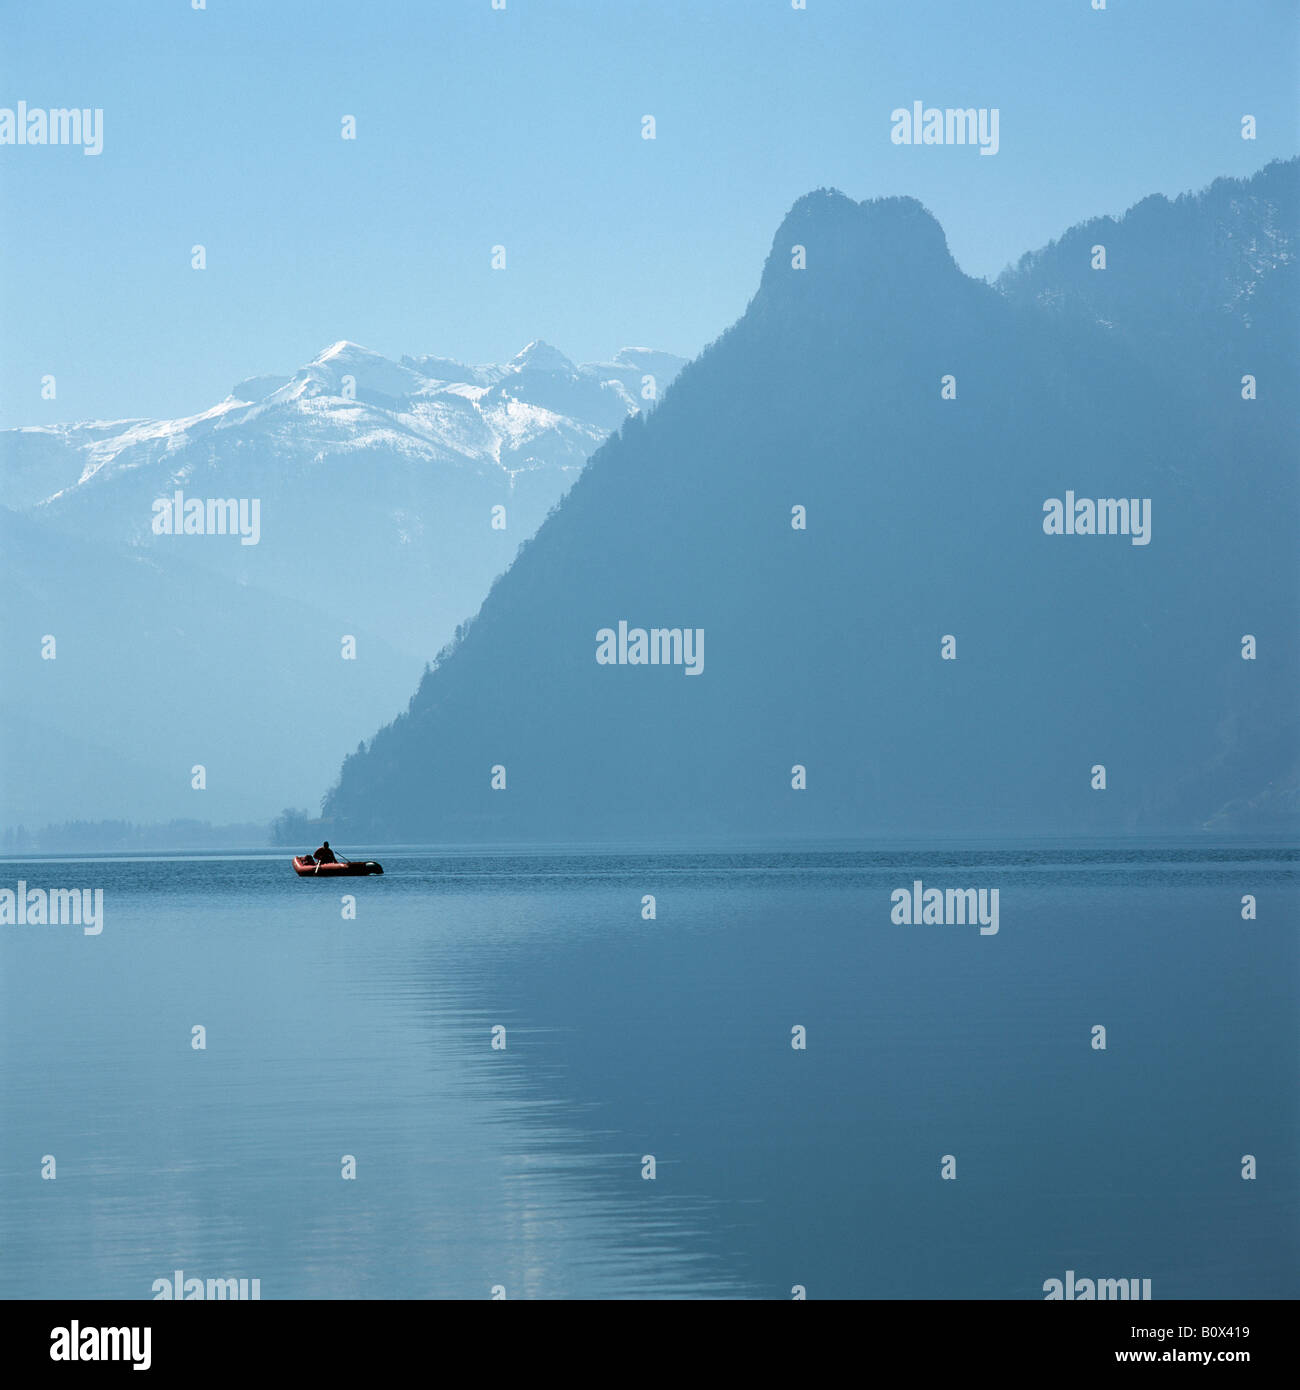 Unrecognizable Person in an Inflatable Raft, Traunsee, Salzkammergut, Austria Stock Photo